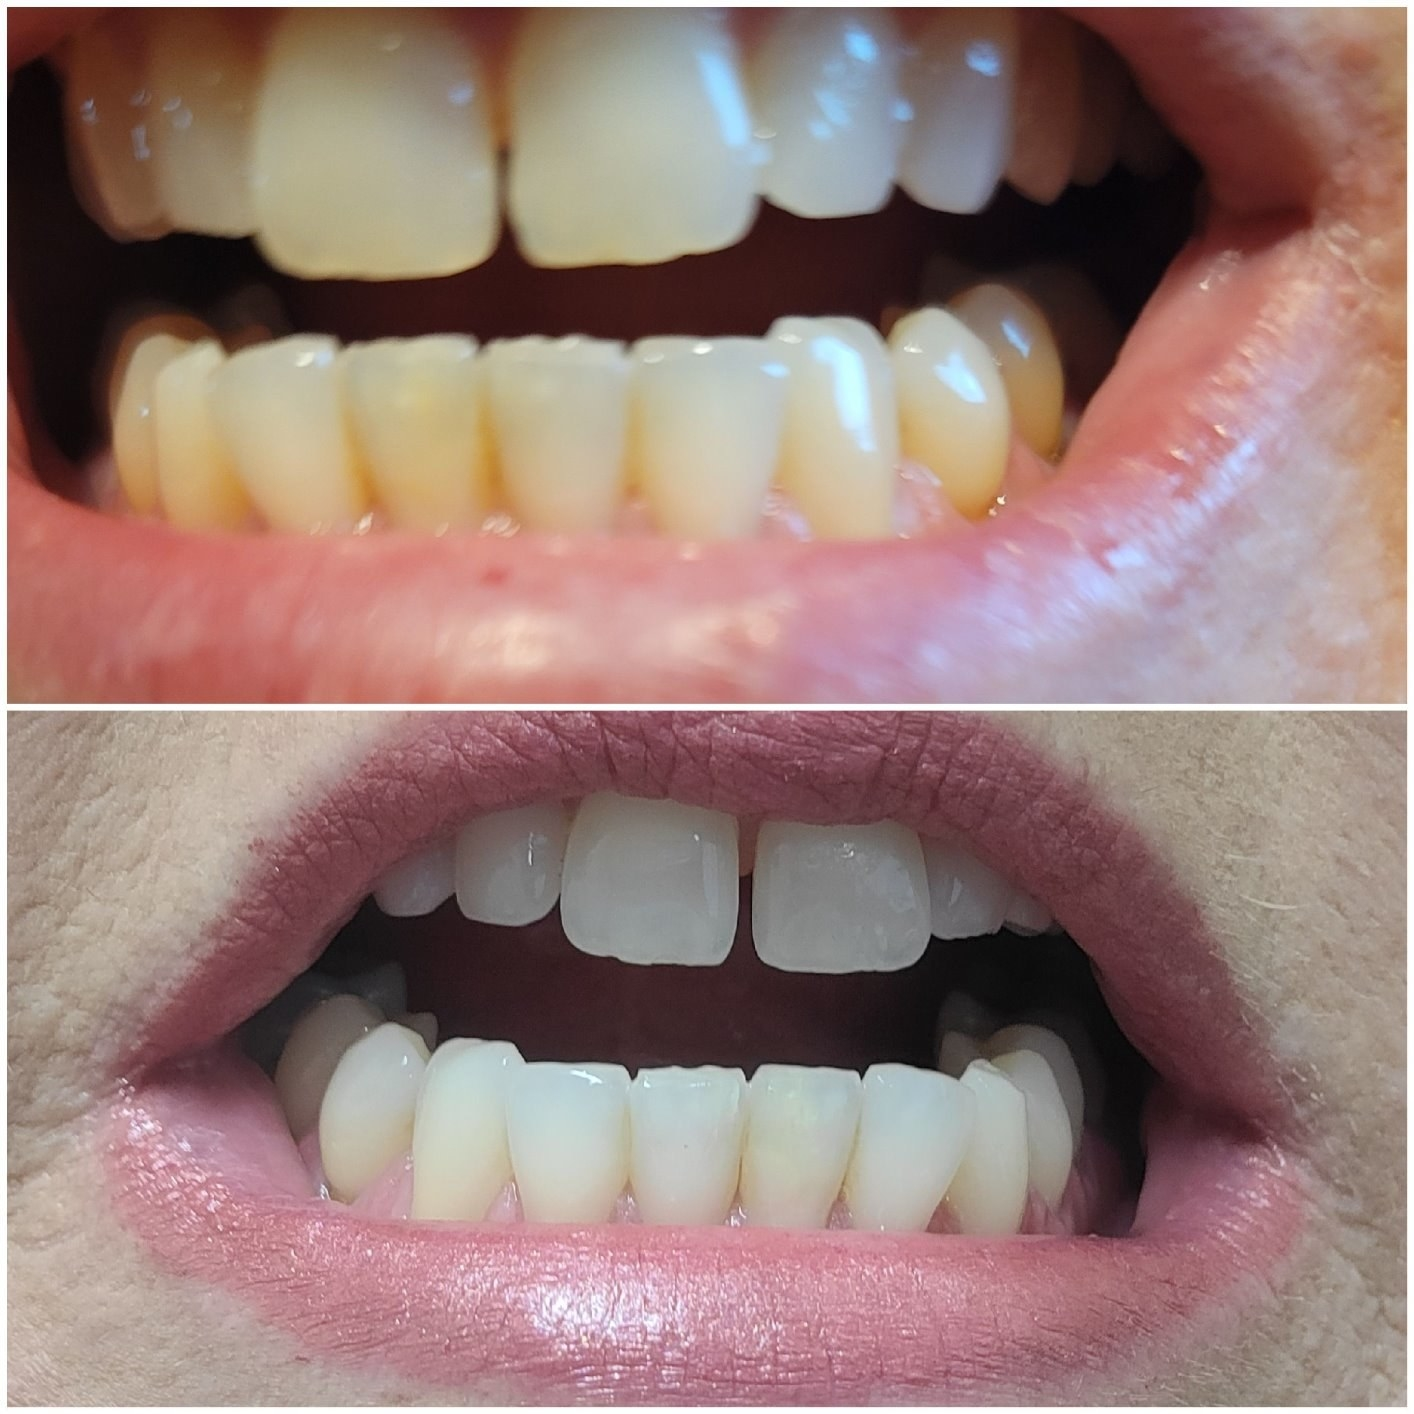 before and after reviewer images of yellow teeth becoming whiter